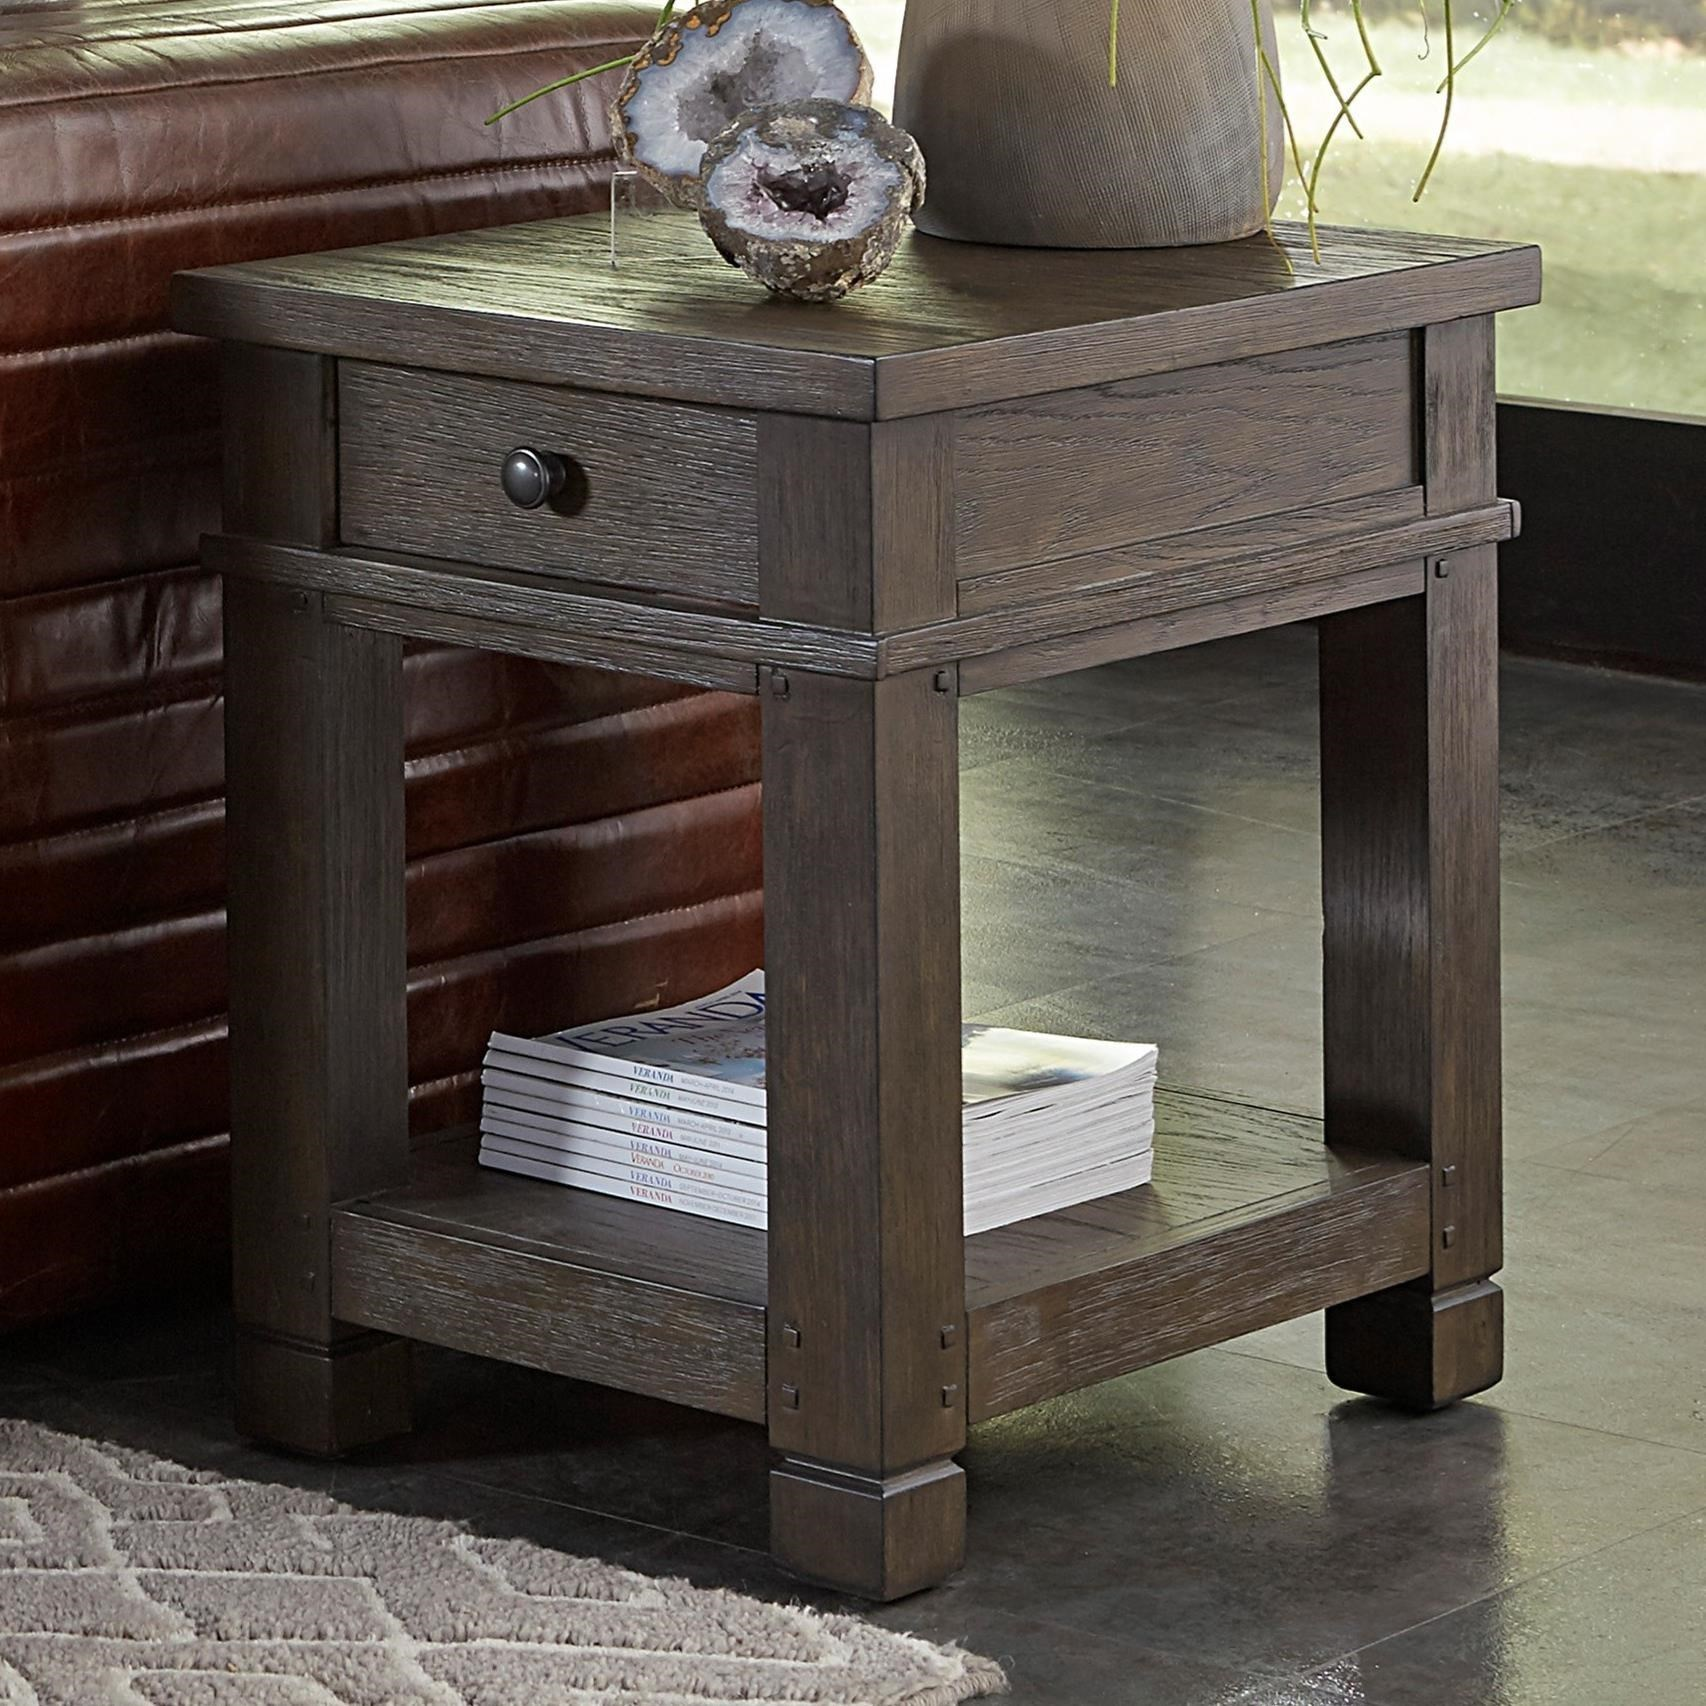 1 Drawer Chairside Table with Open Shelf